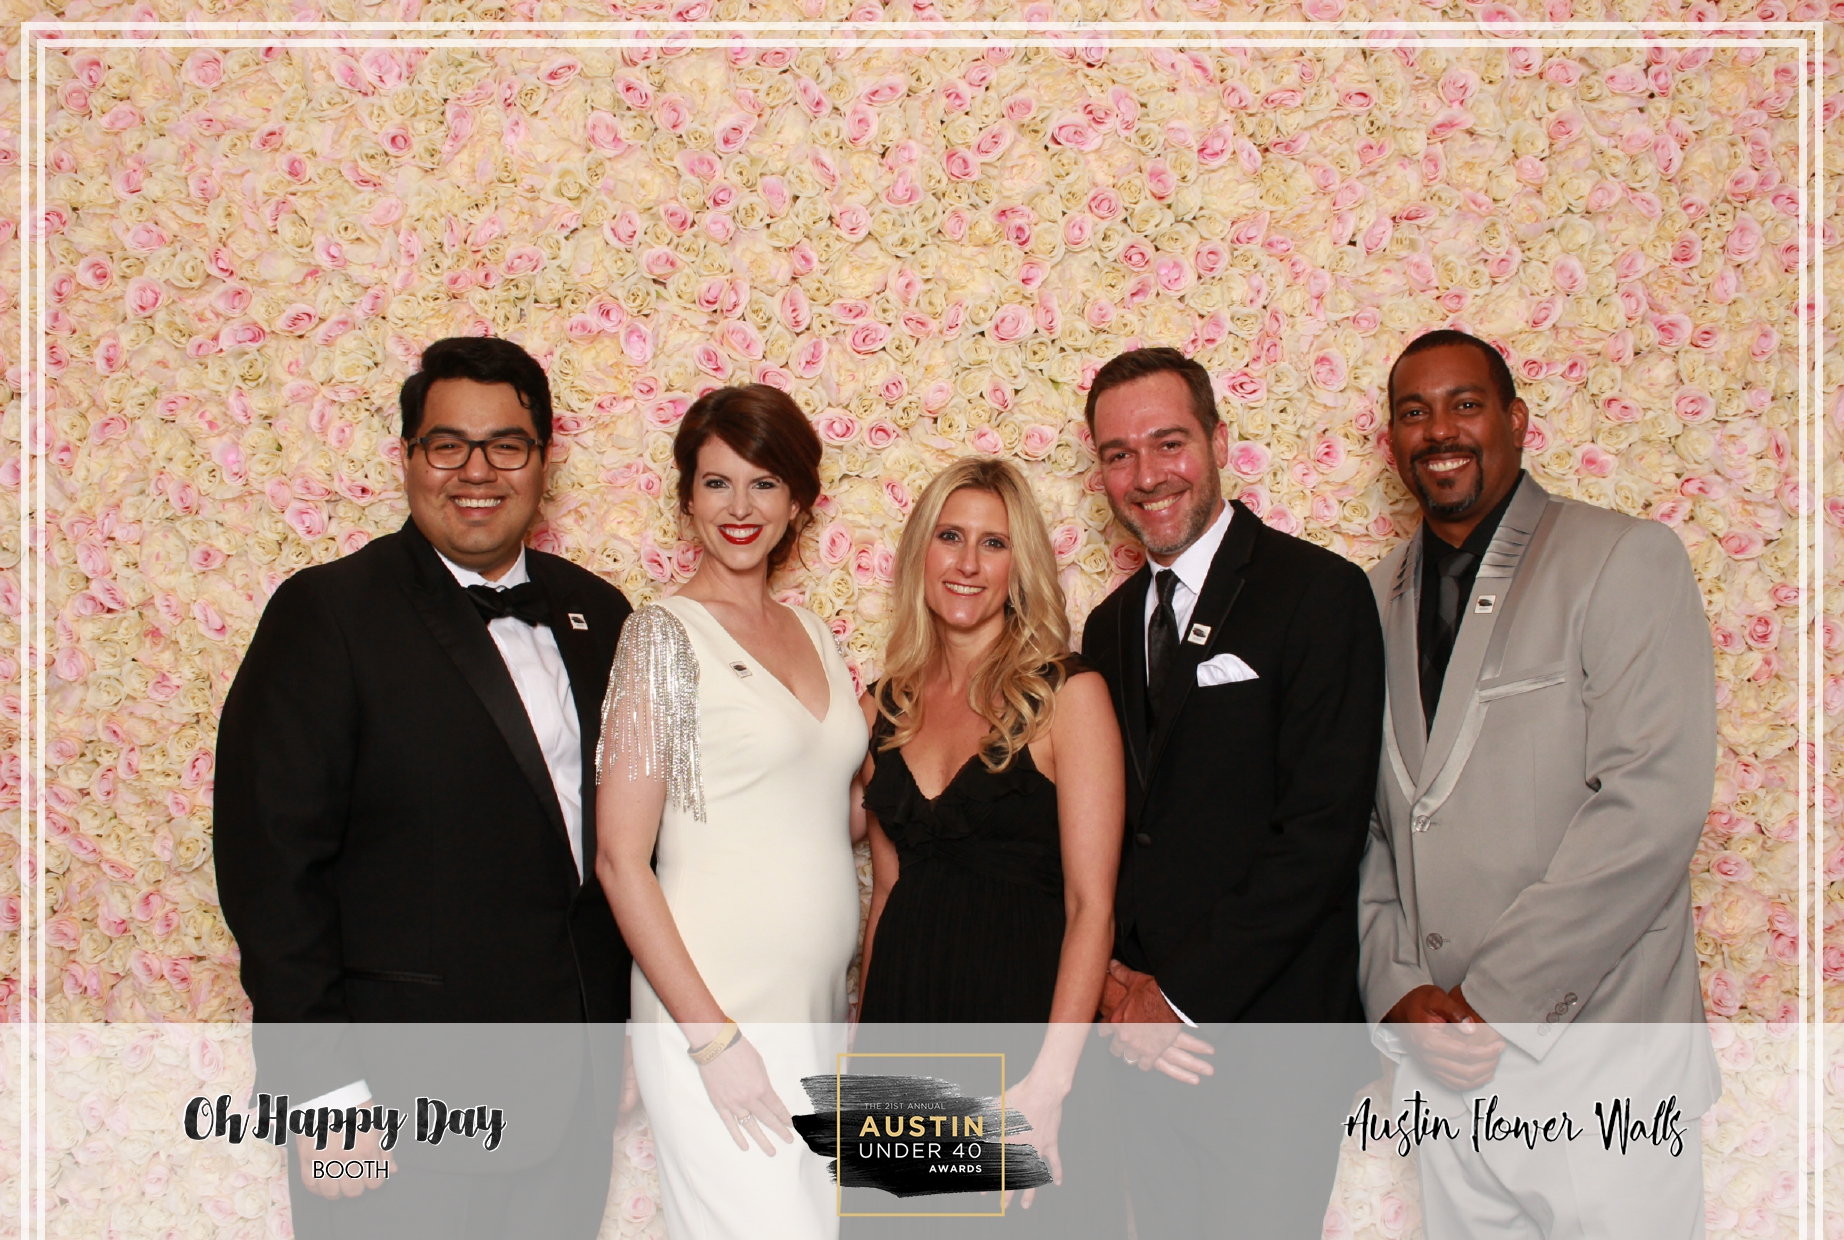 Oh Happy Day Booth - Austin Under 40-14.jpg